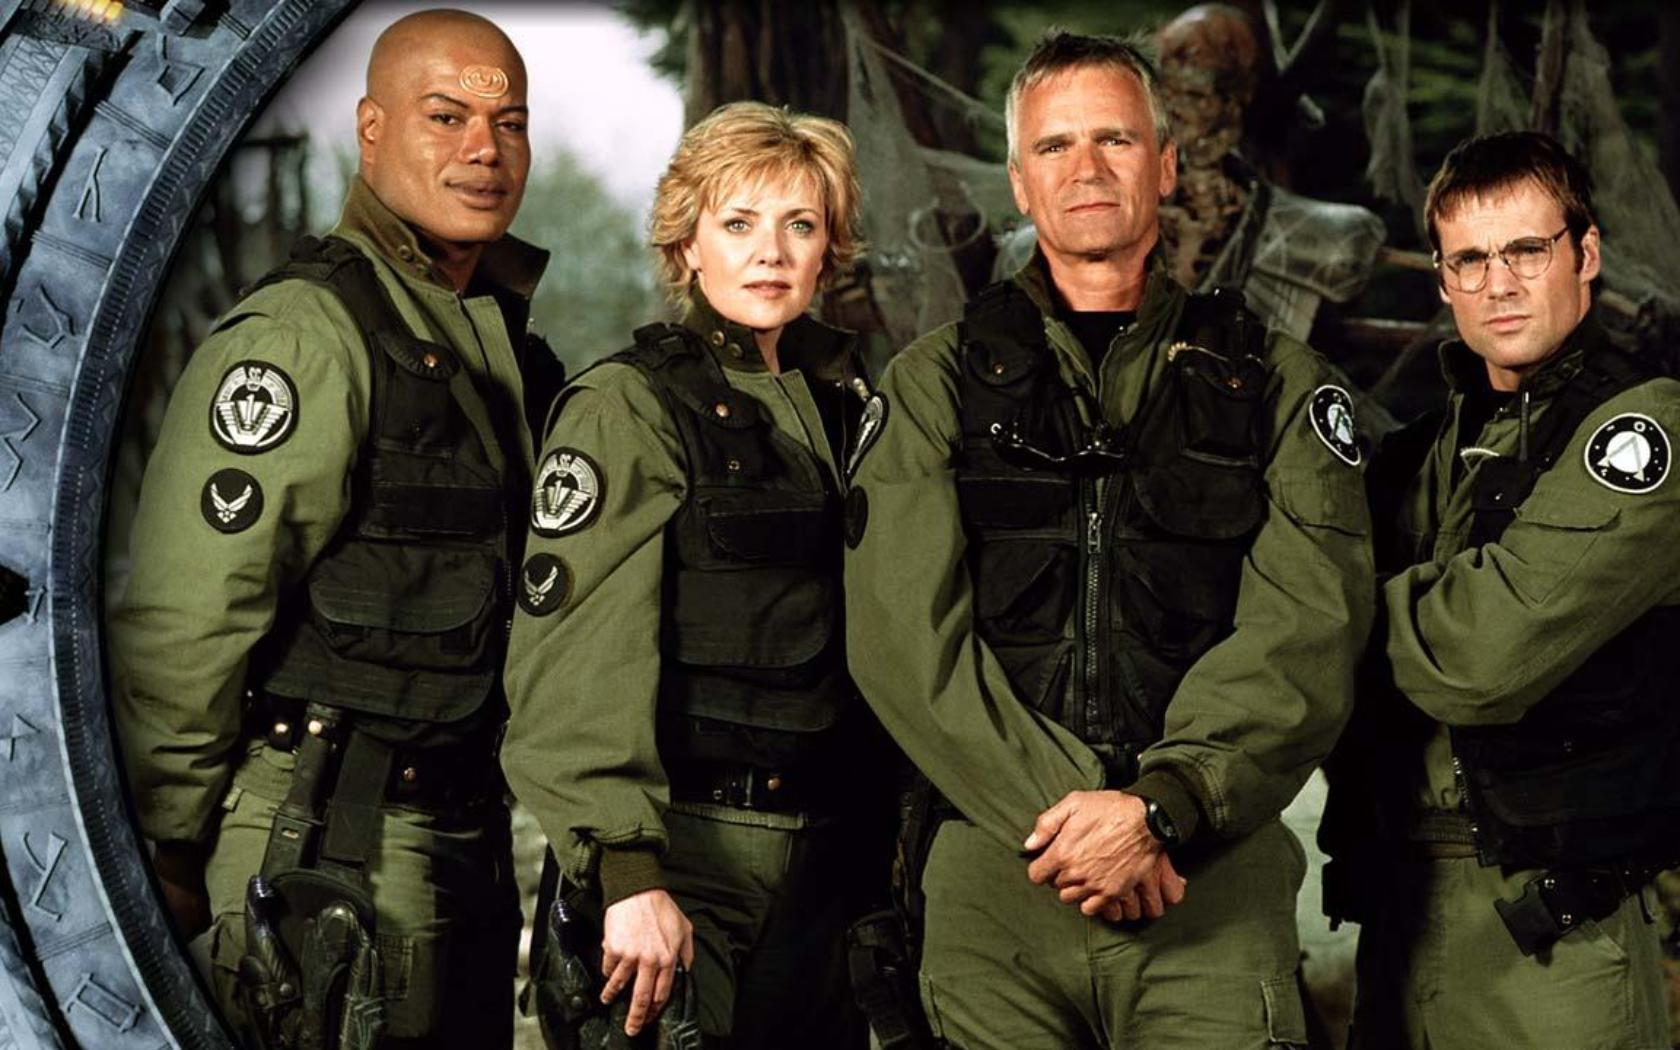 amanda tapping Stargate SG-1 HD Wallpaper